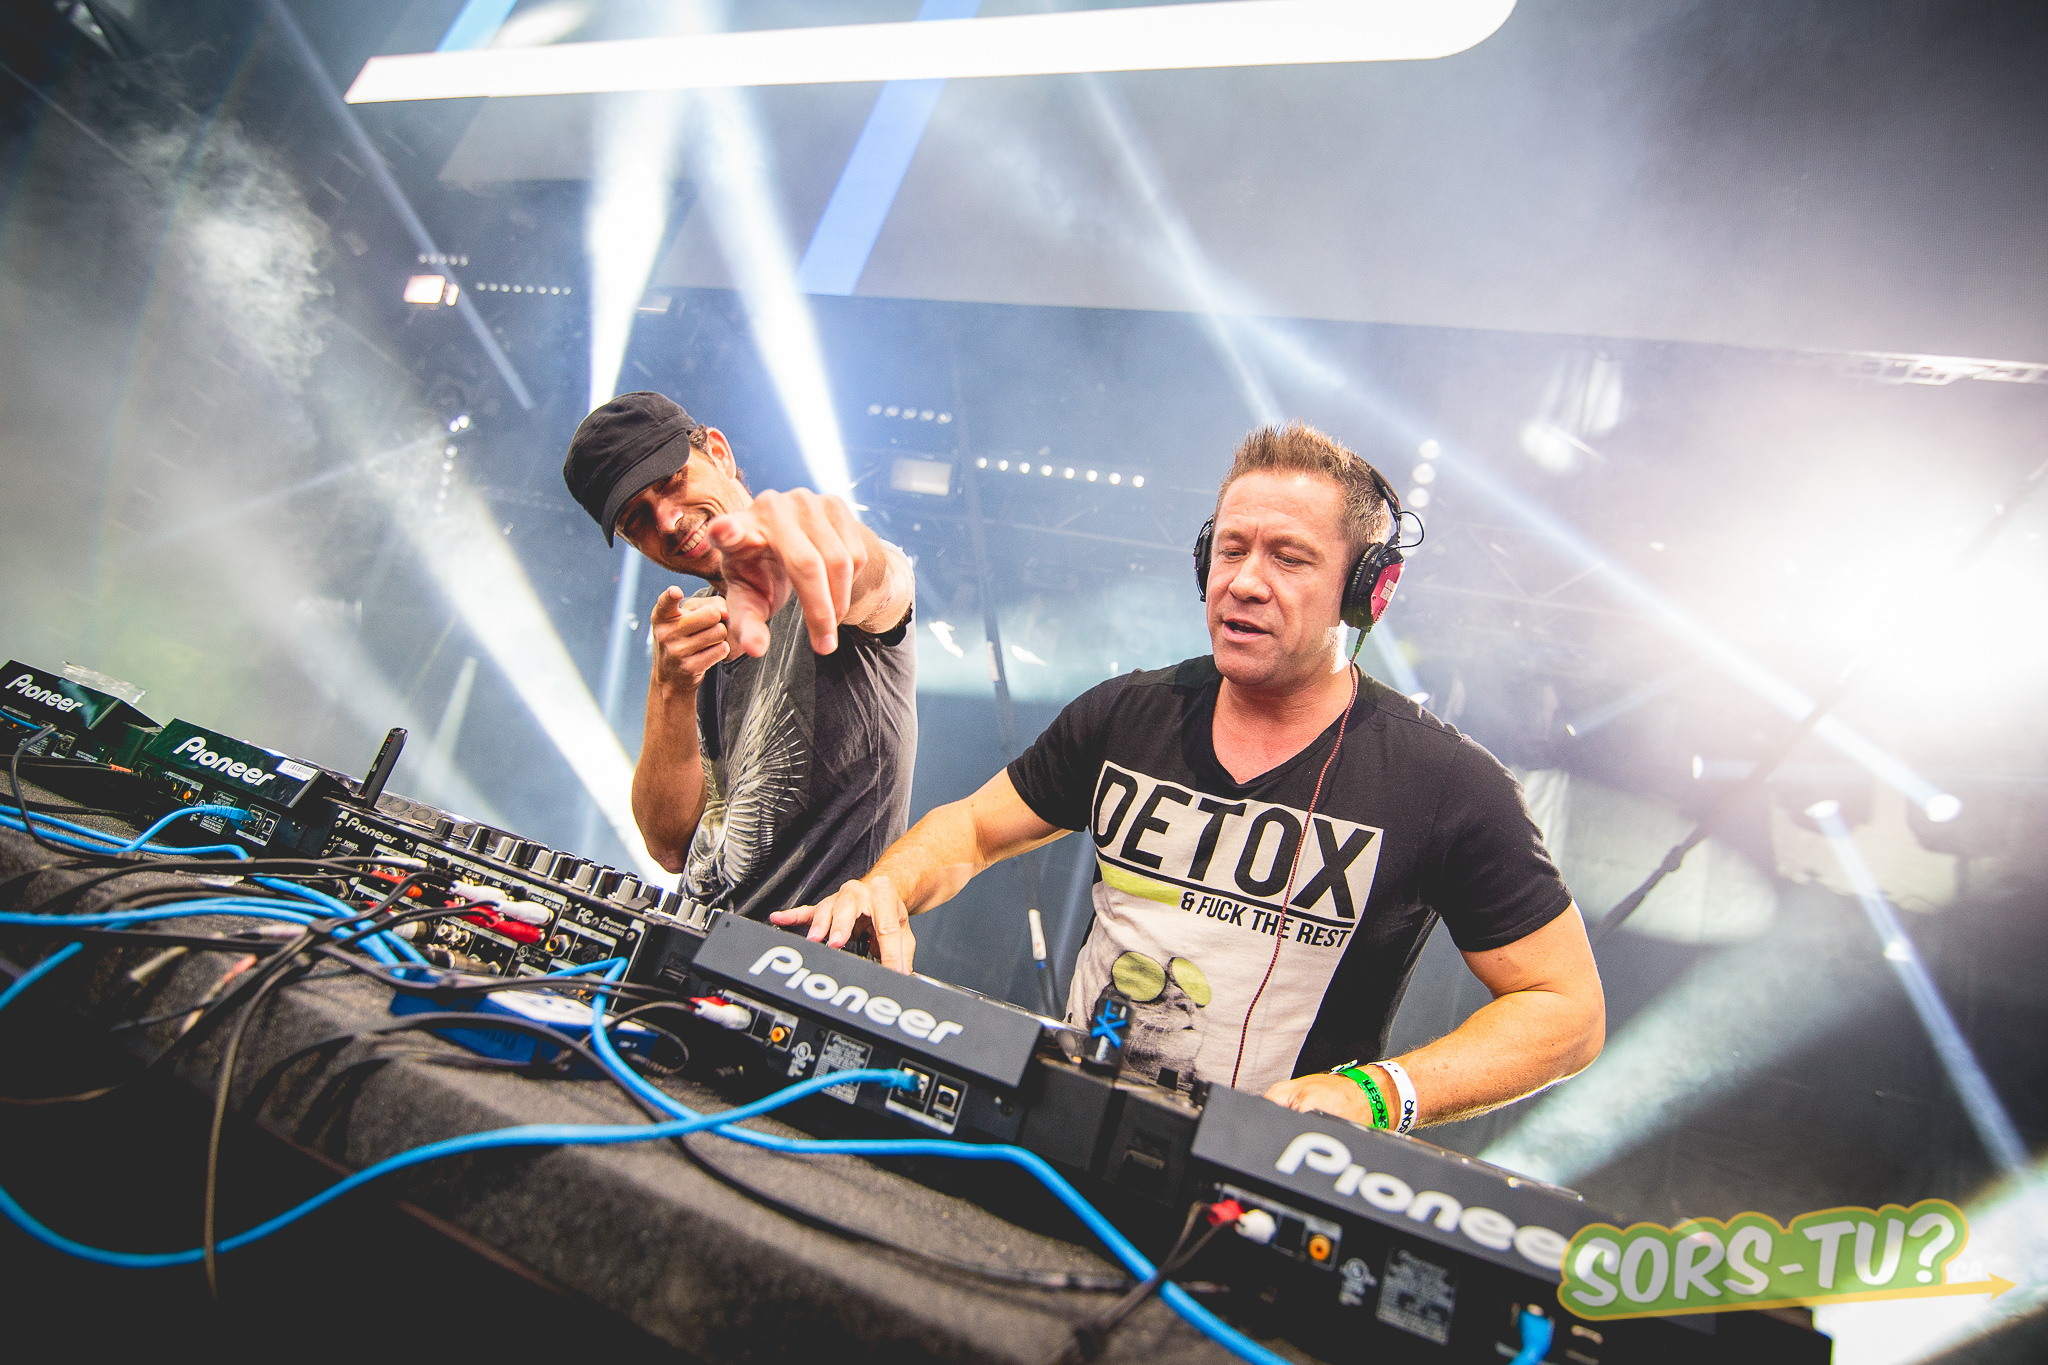 cosmic gate-IleSoniq-2014-1-5.jpg